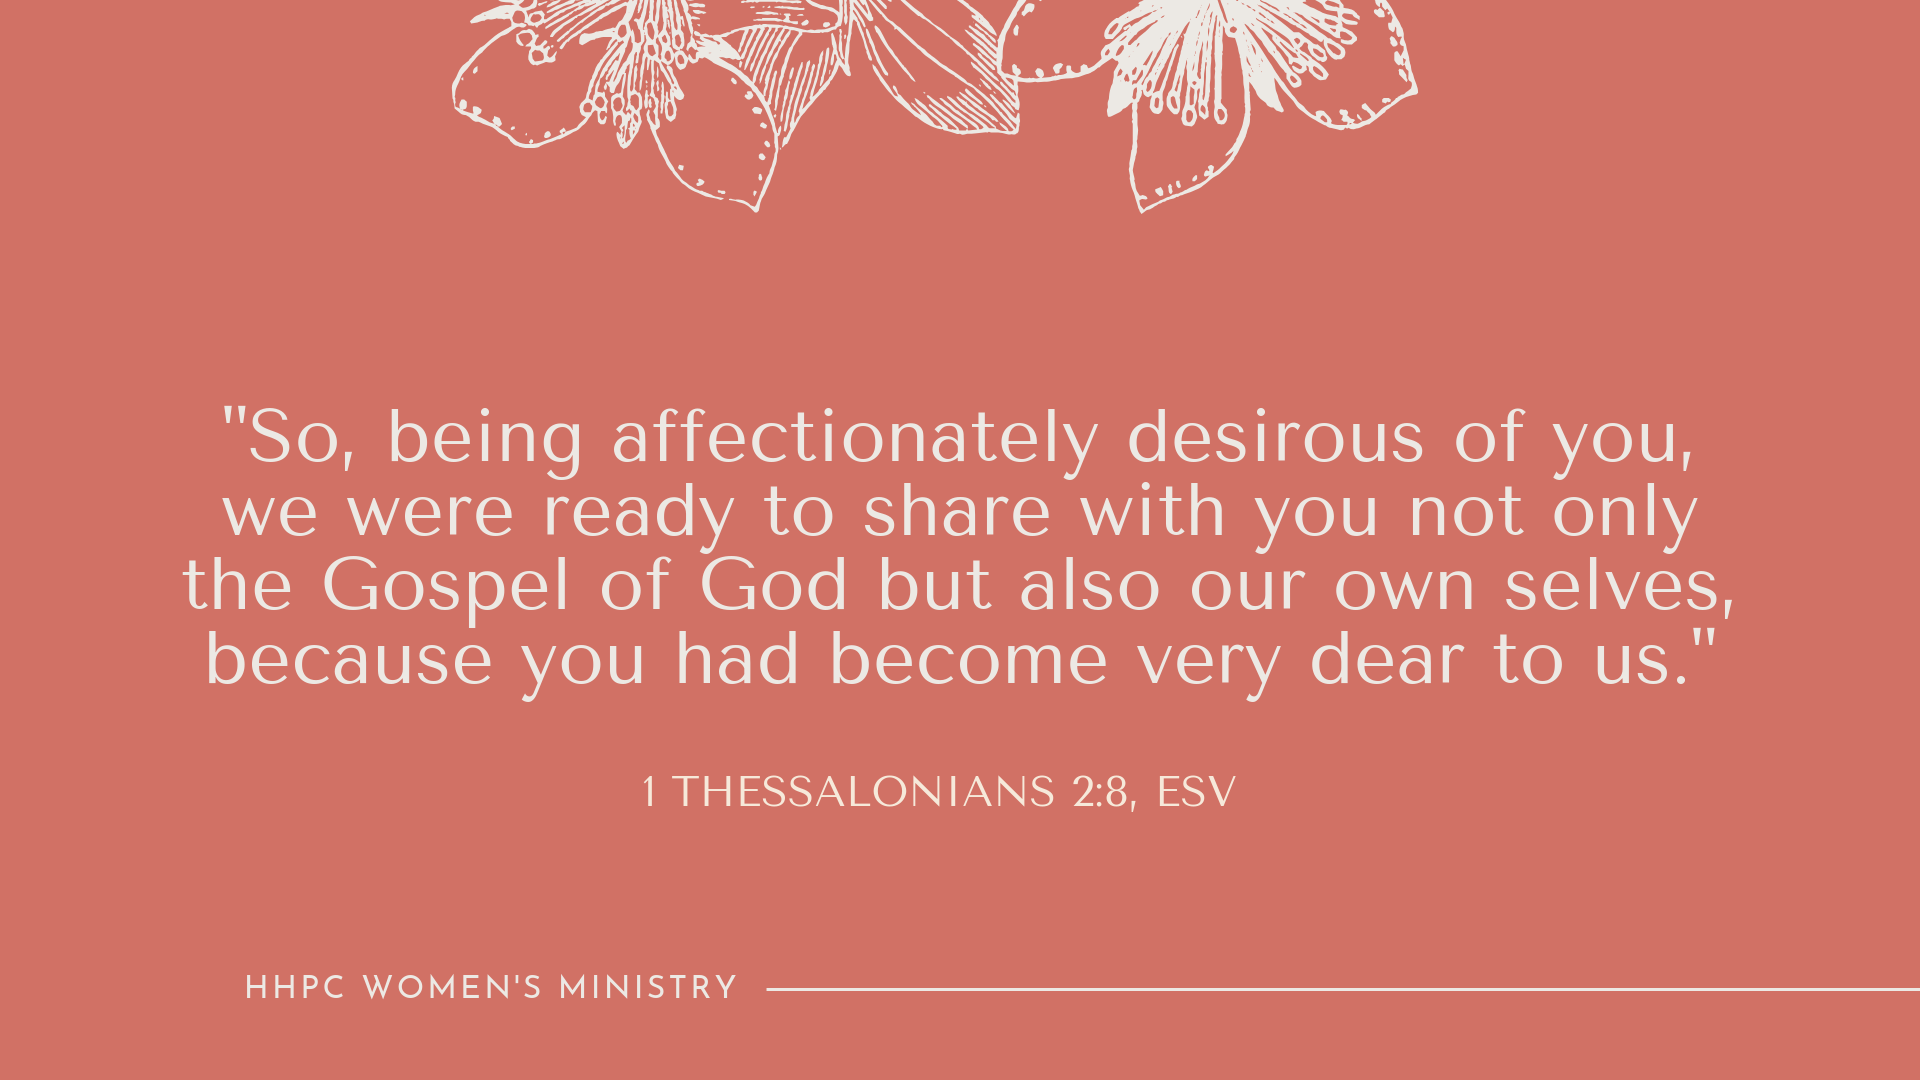 WOMEN'S MINISTRY at HHPC-2.png